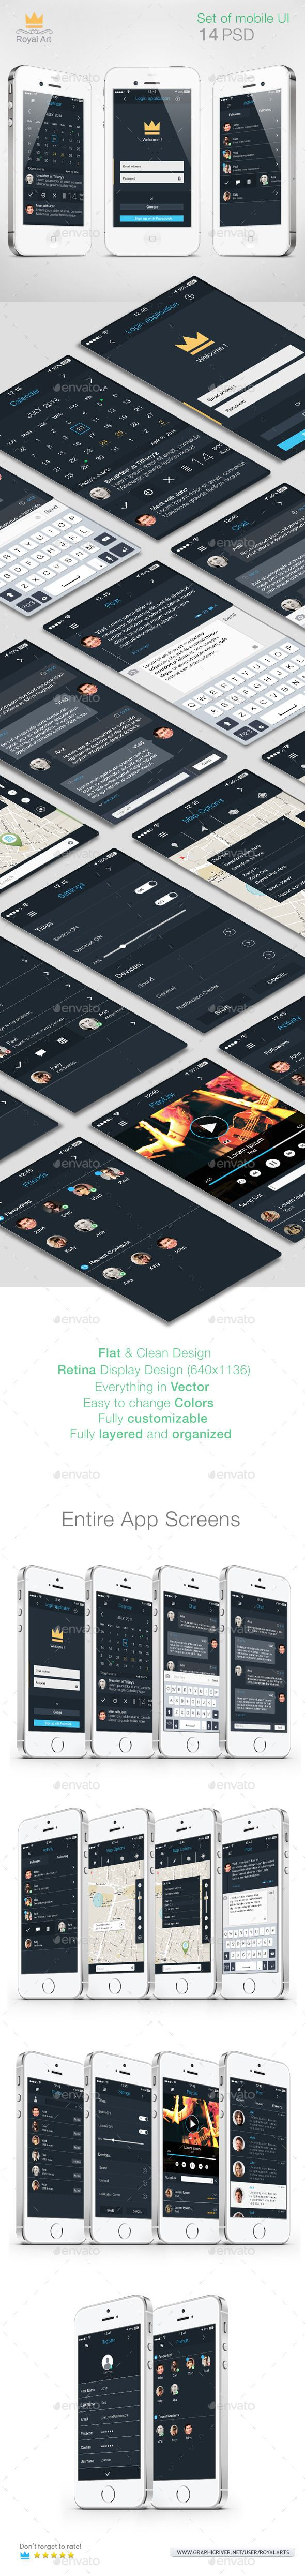 Mobile UI KIT Flat (User Interfaces)